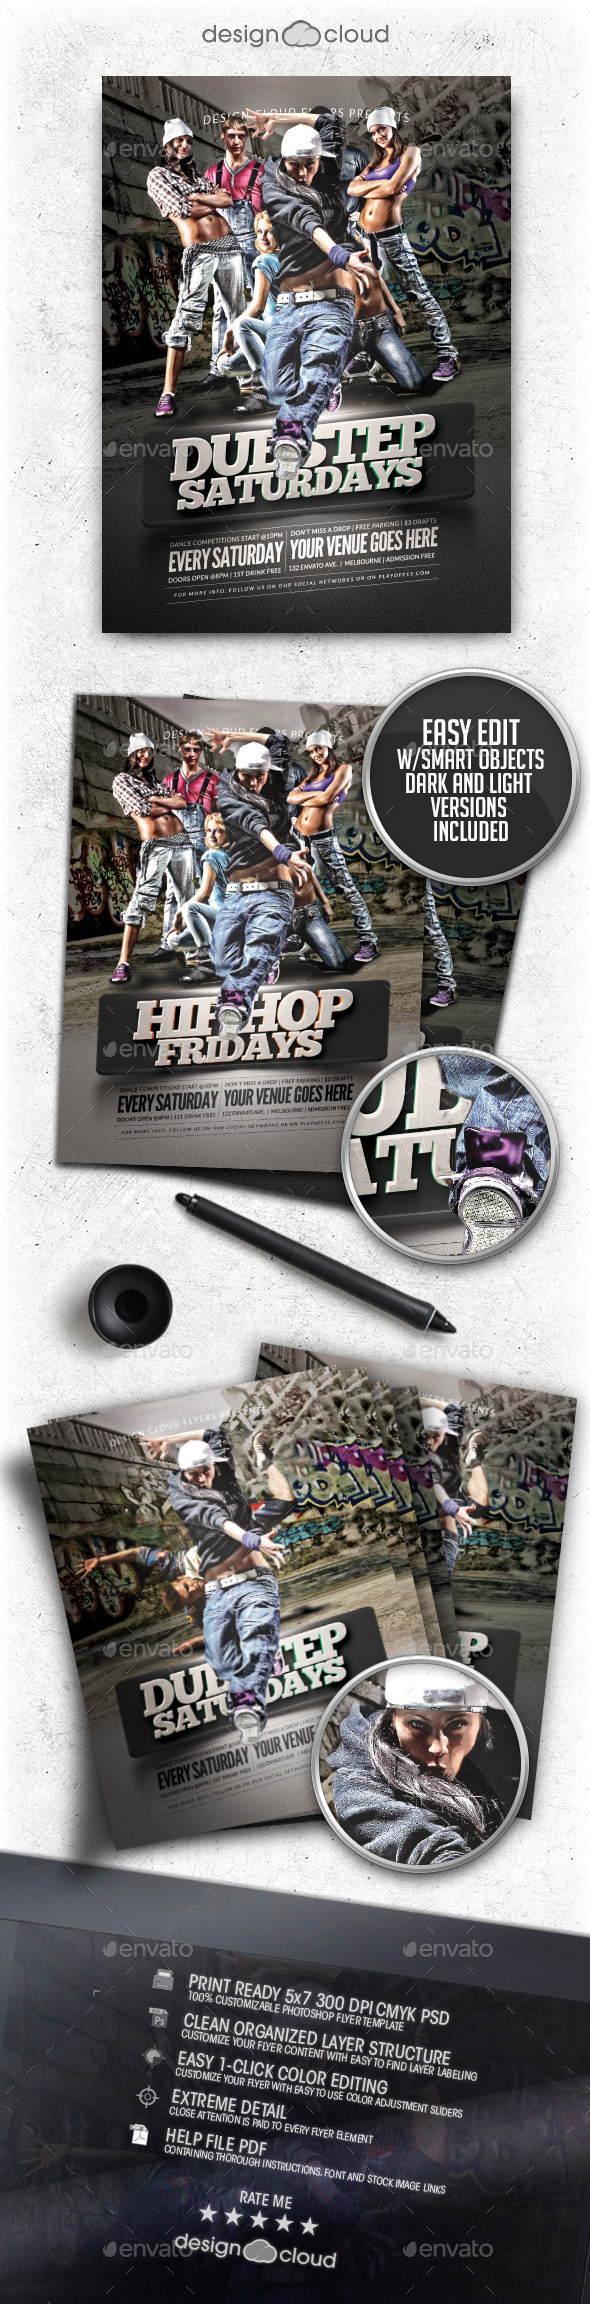 GraphicRiver Hip Hop Dubstep Dance Party Flyer Template 10423233